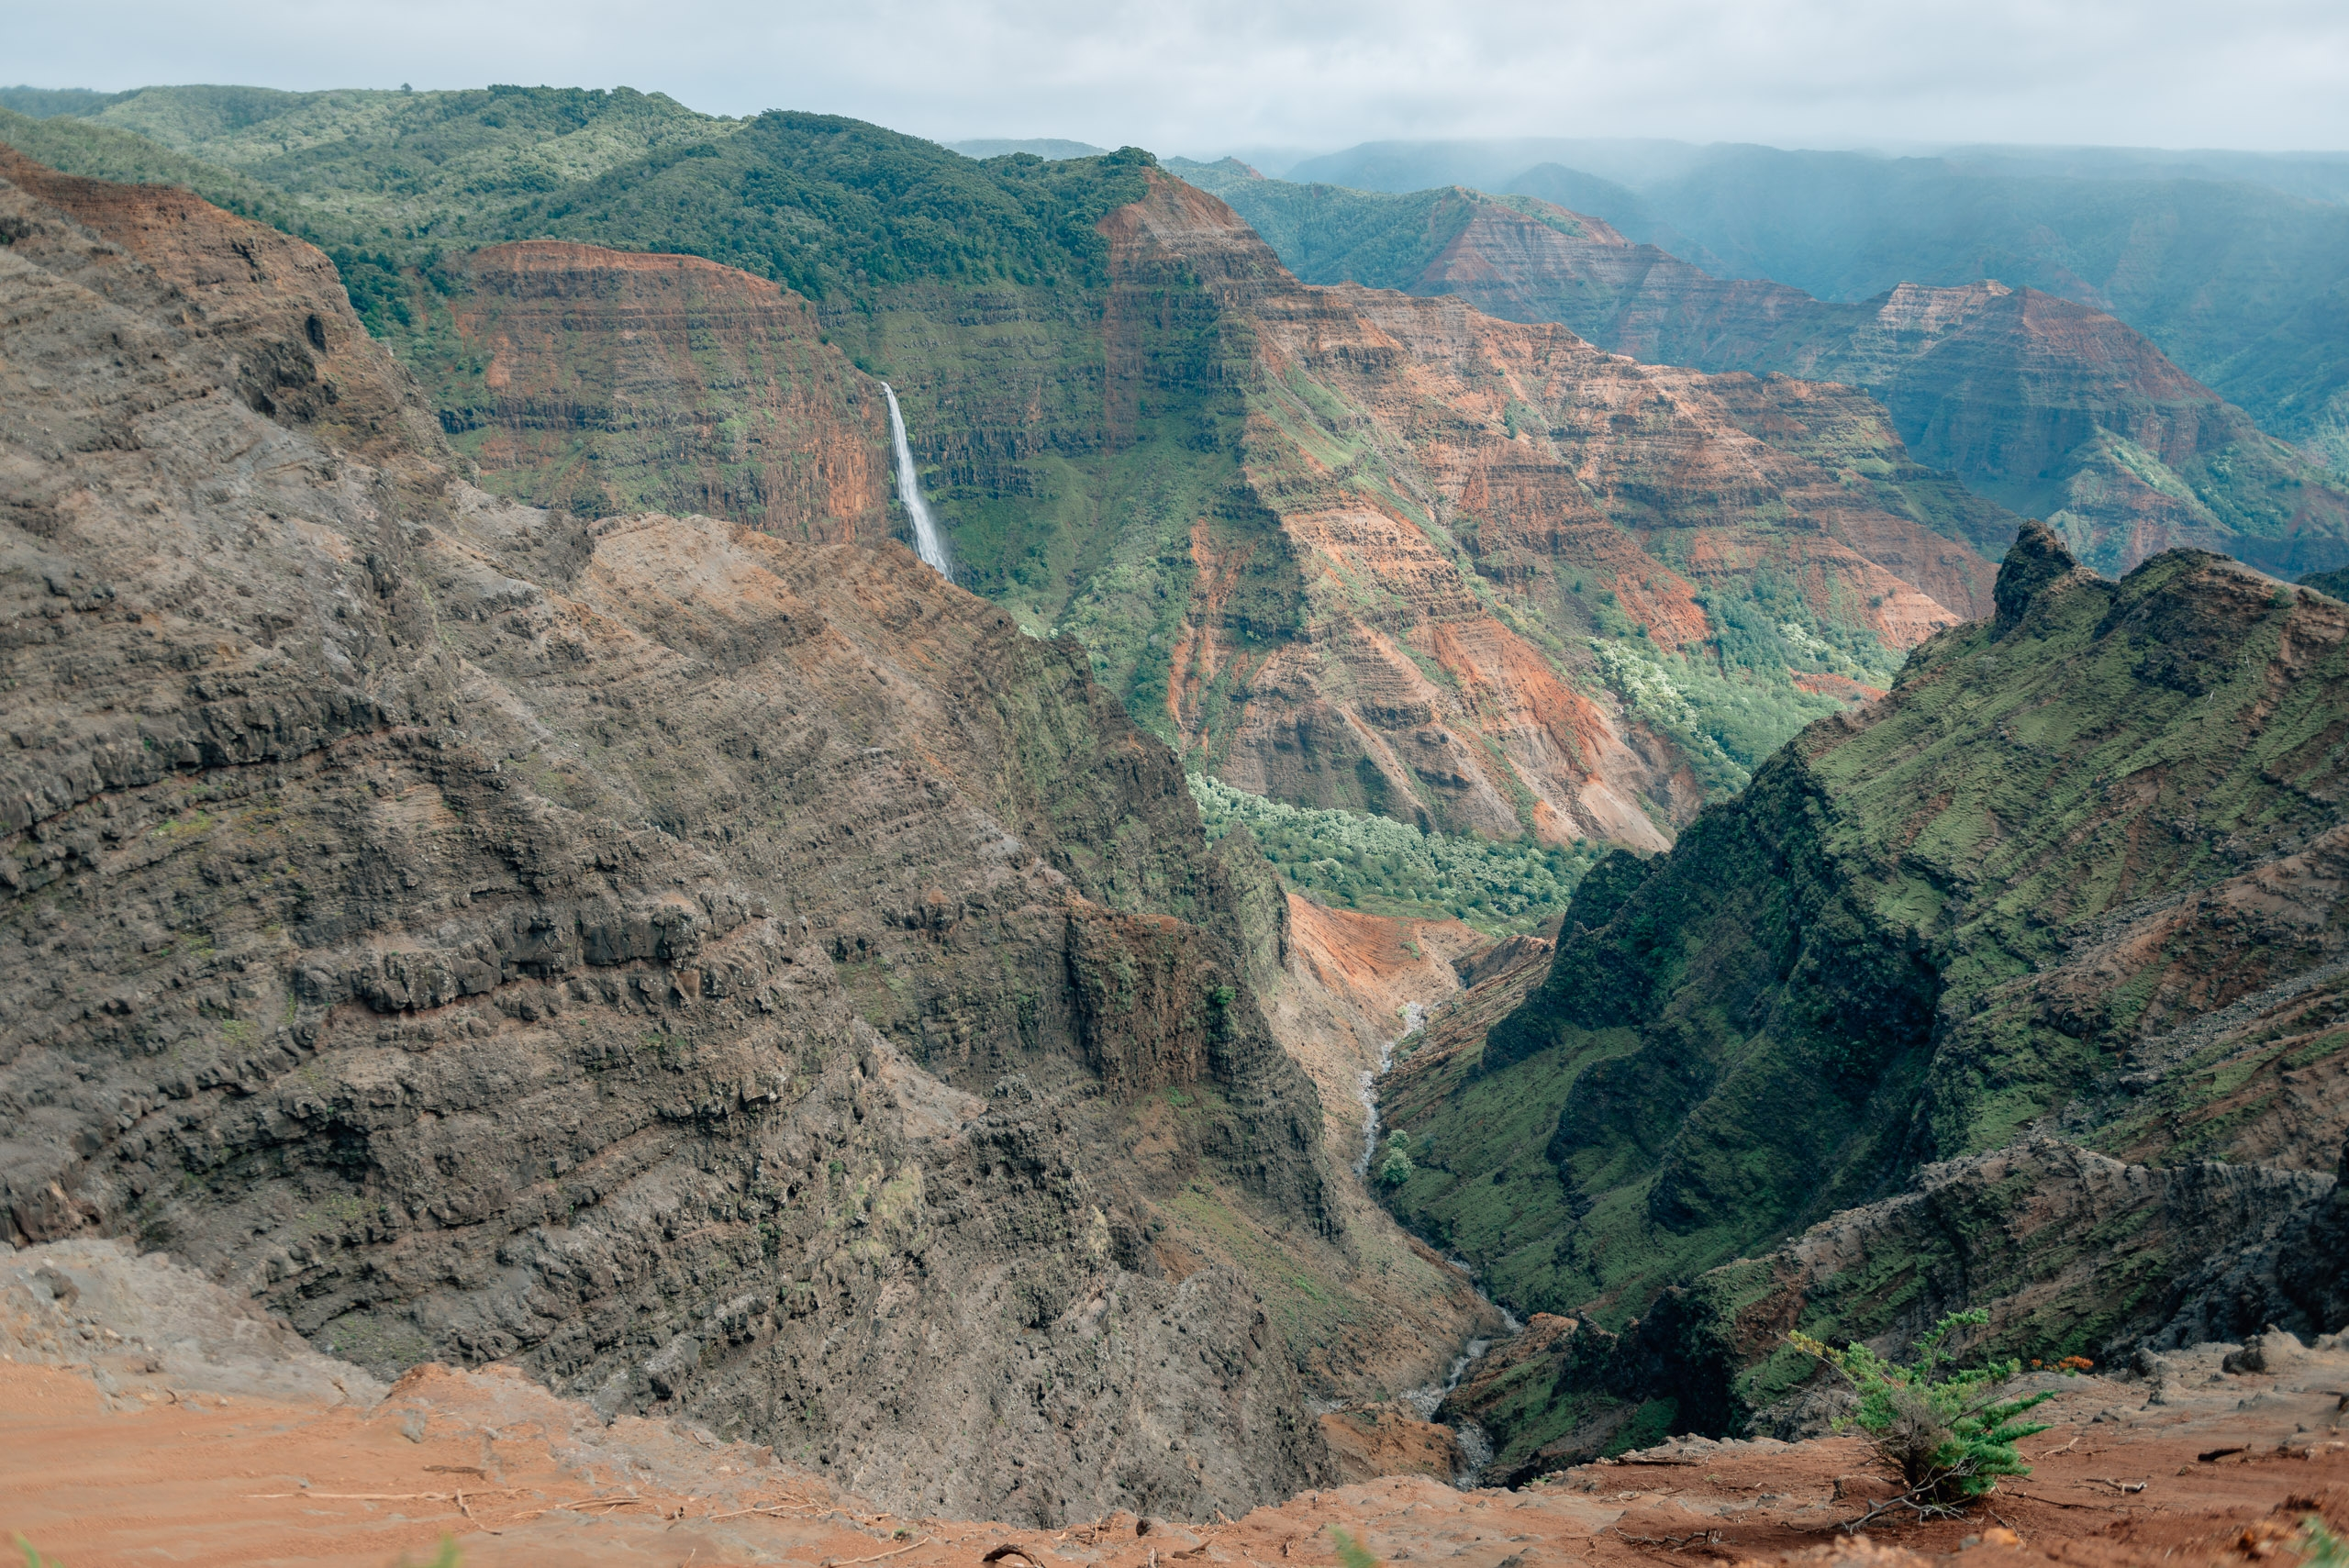 Overlooking Waimea Canyon 5